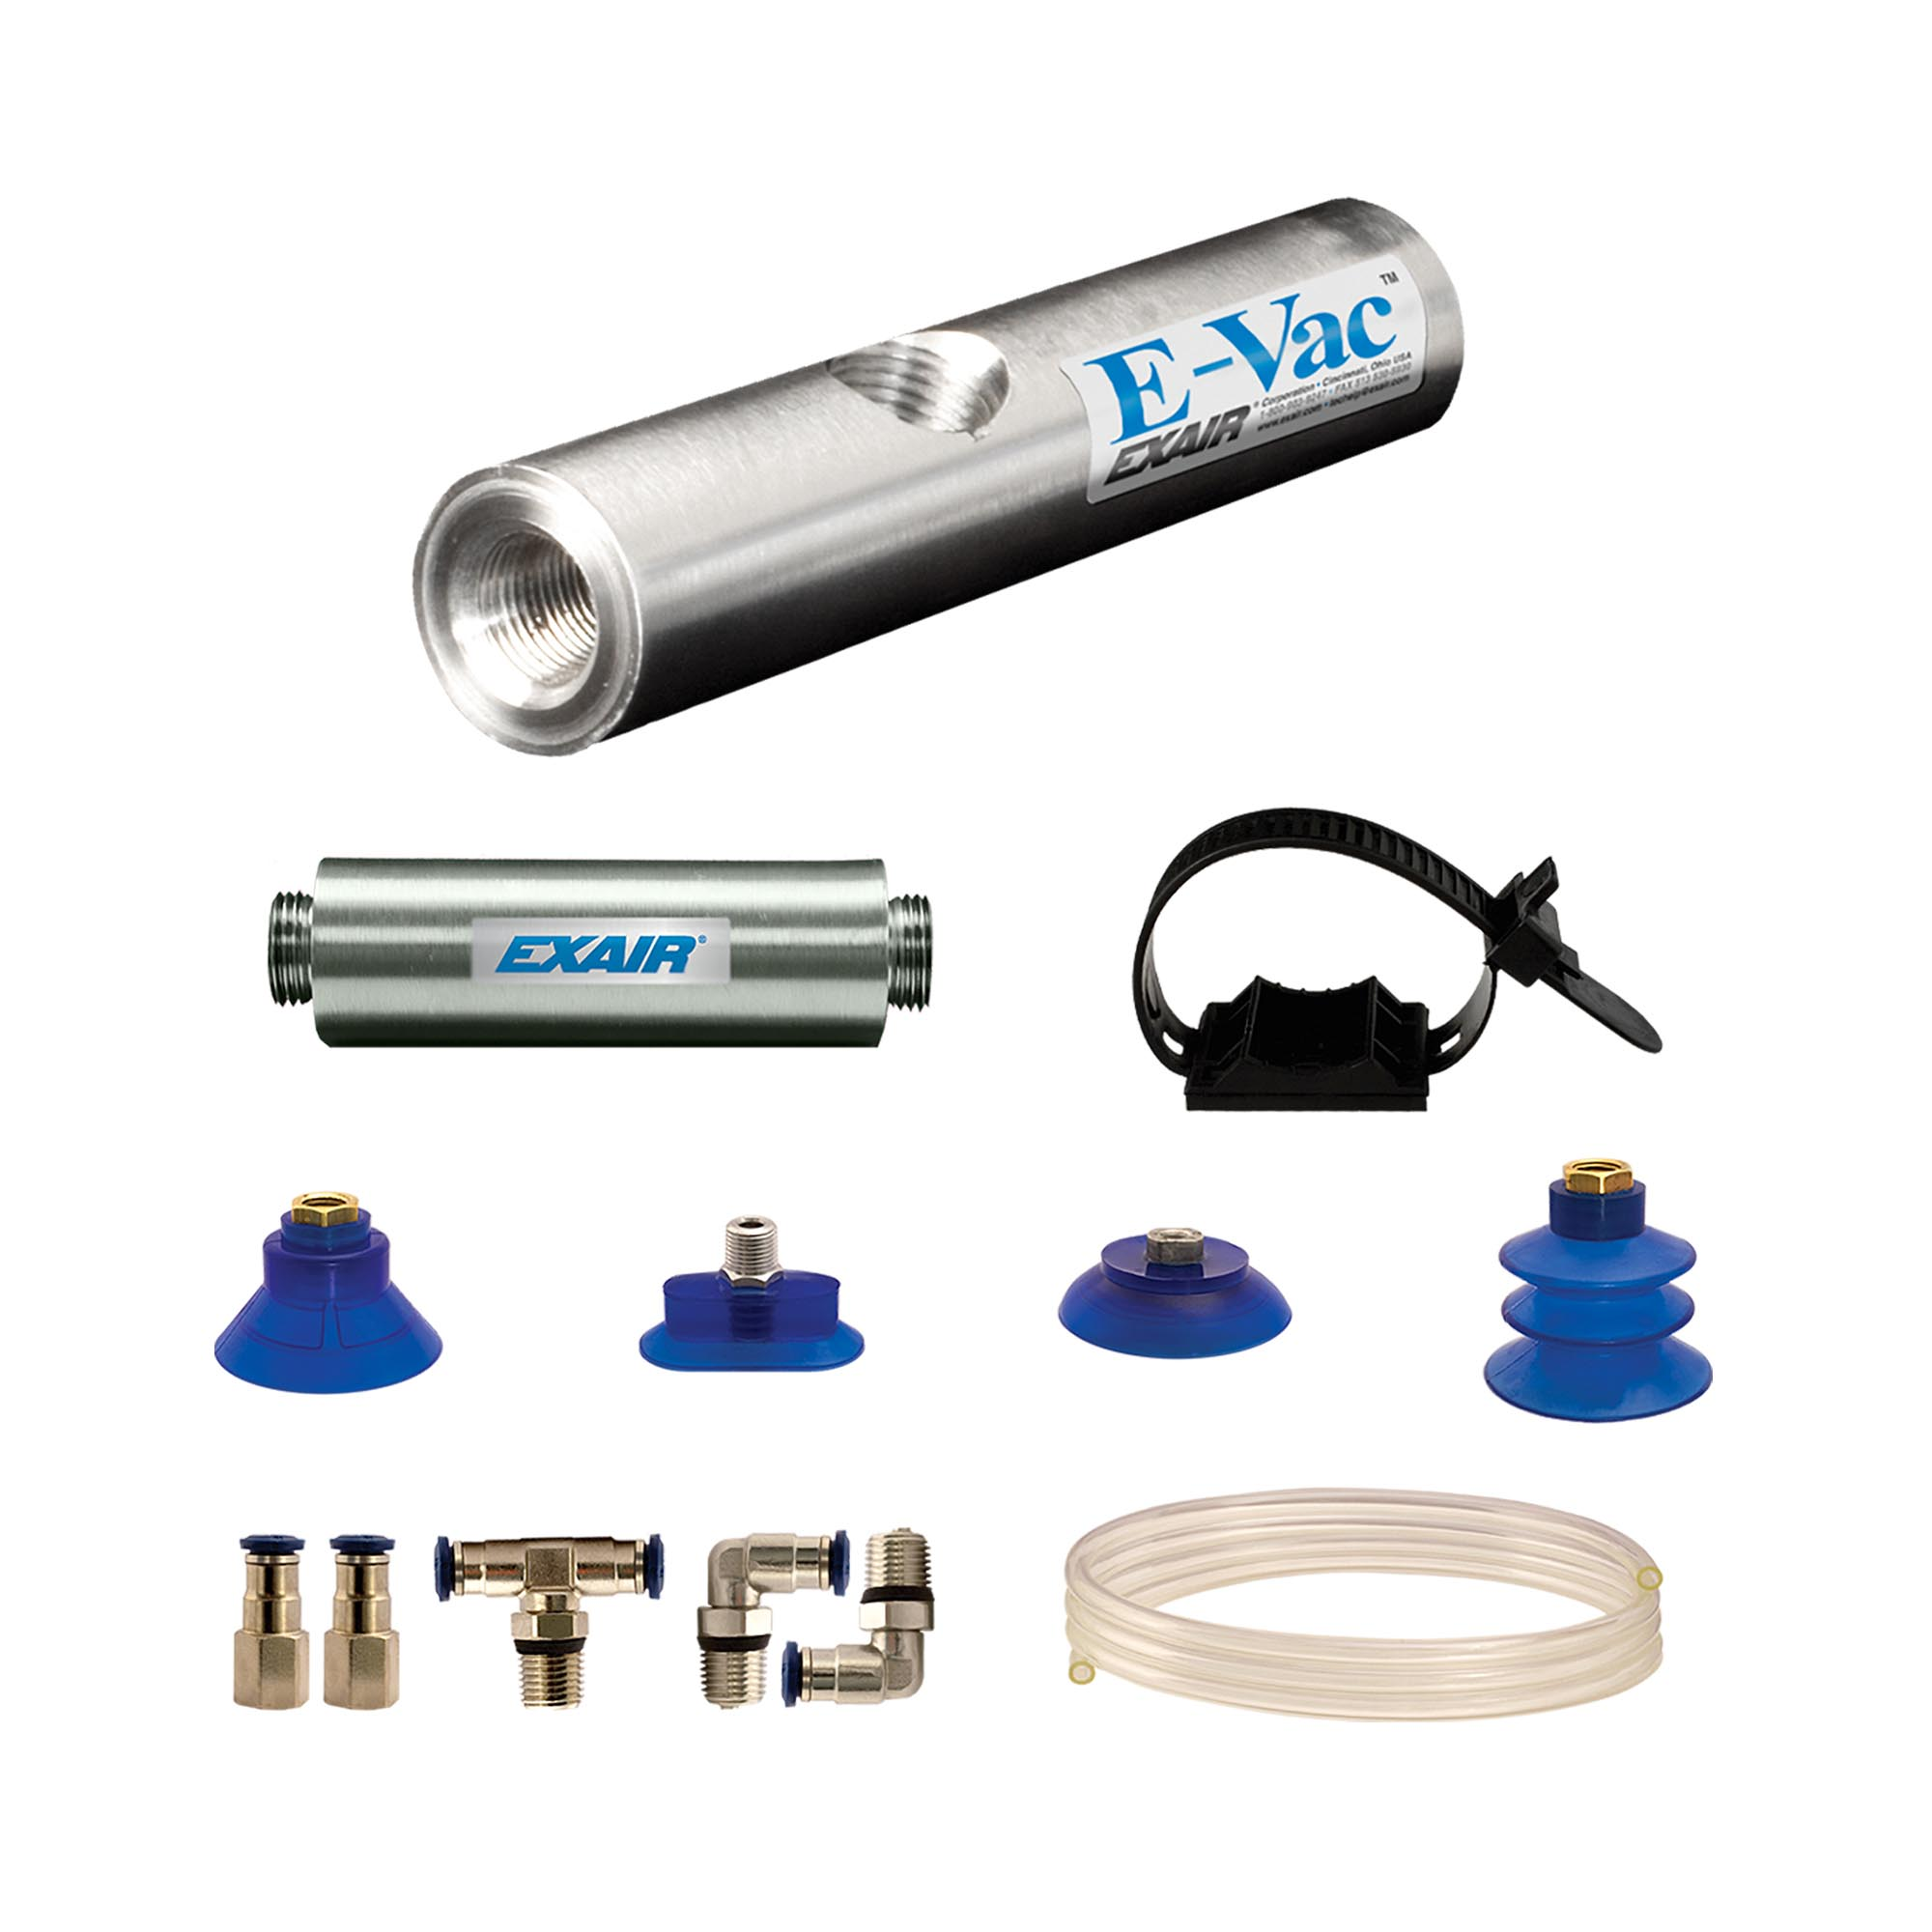 Model 811003M In-Line E-Vac Deluxe kit with straight through muffler .